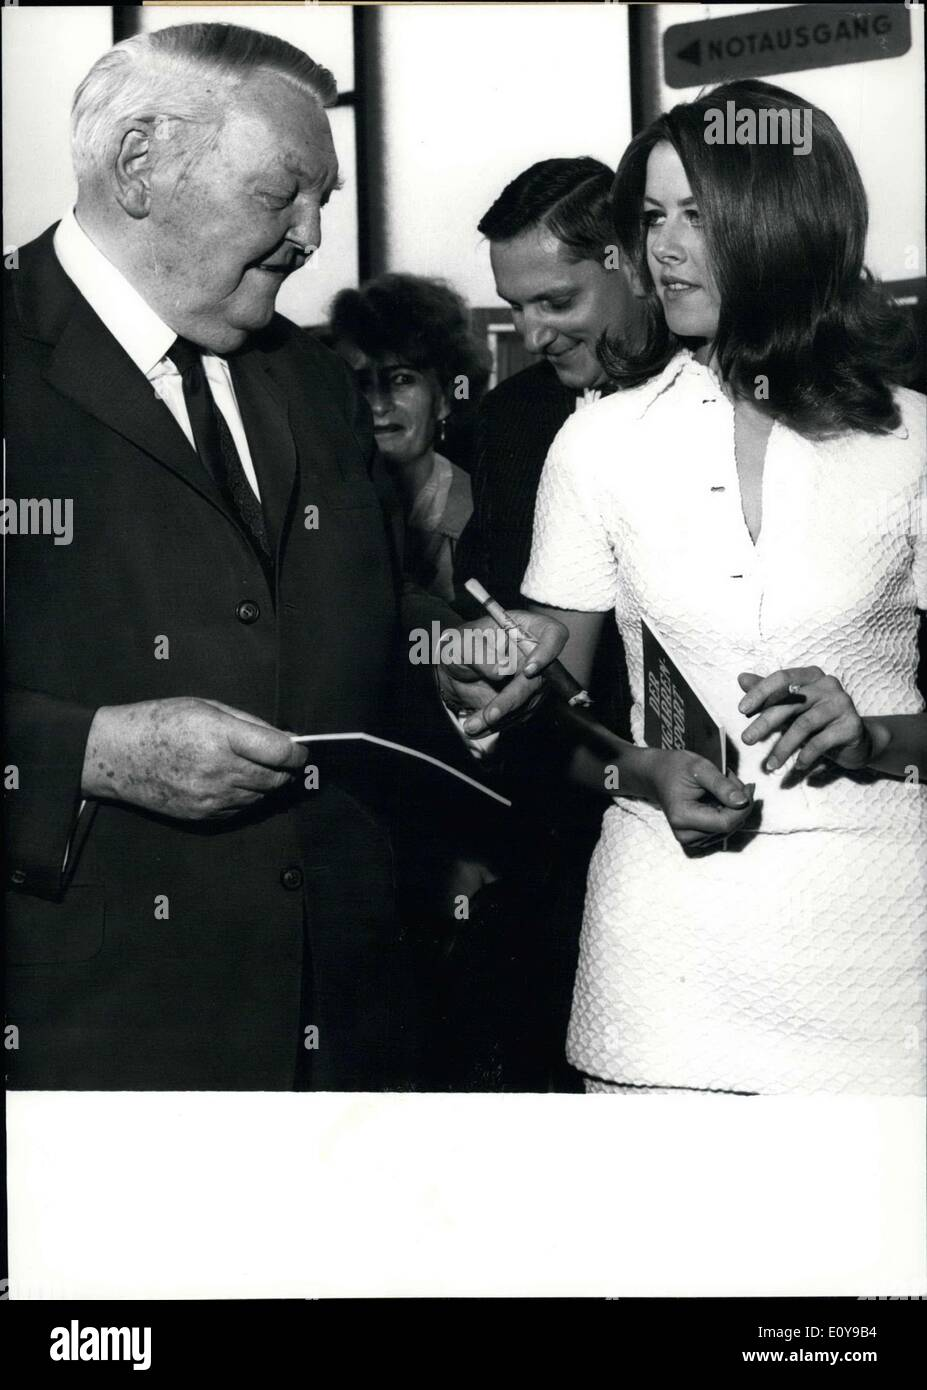 Sep. 01, 1969 - Among the cigar smokers is Germany's most prominent smoker, former Chancellor Dr. Ludwig Erhard. The old chancellor opened the K?ln tobacco products show ''TAFA 69.'' During his roundabouts at the show the ex-chancellor is seen here speaking with theater-actress Rosemarie Decker about their common interests. - Stock Image